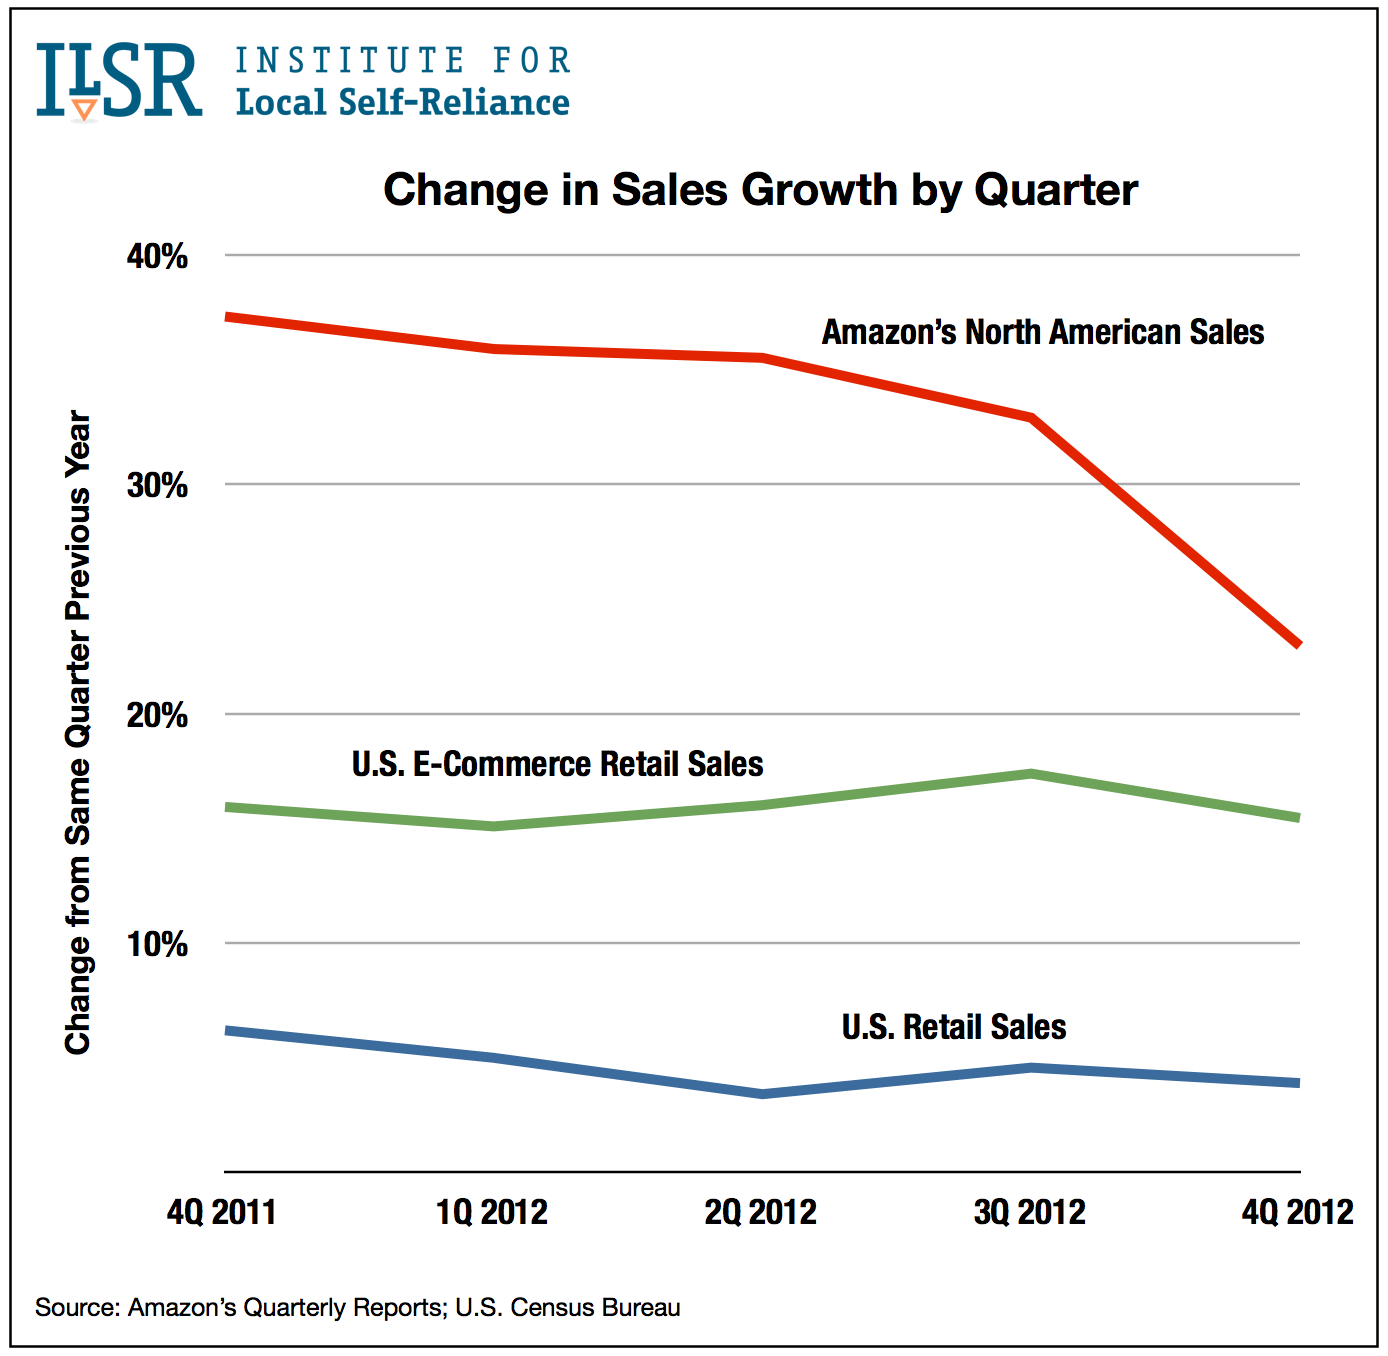 Graph: Quarterly Sales Growth for Amazon and U.S. Retail Sales